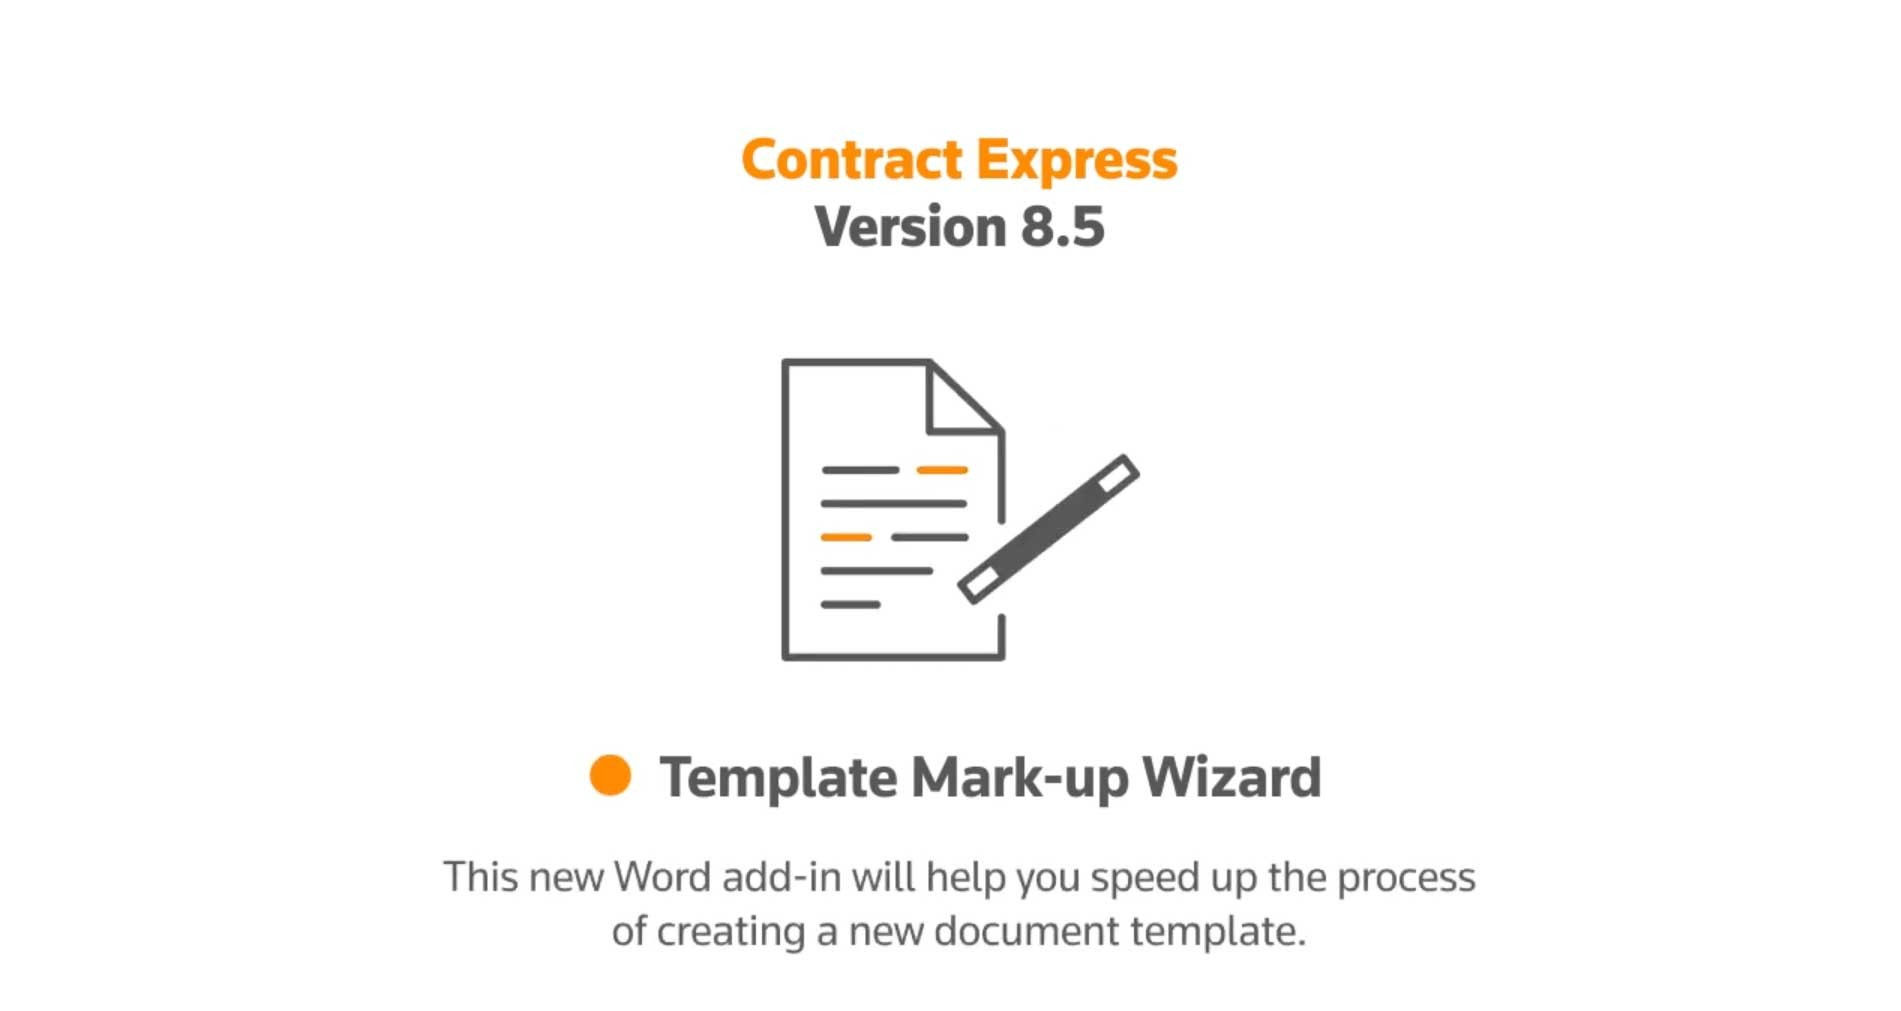 Introduction to Contract Express 8.5